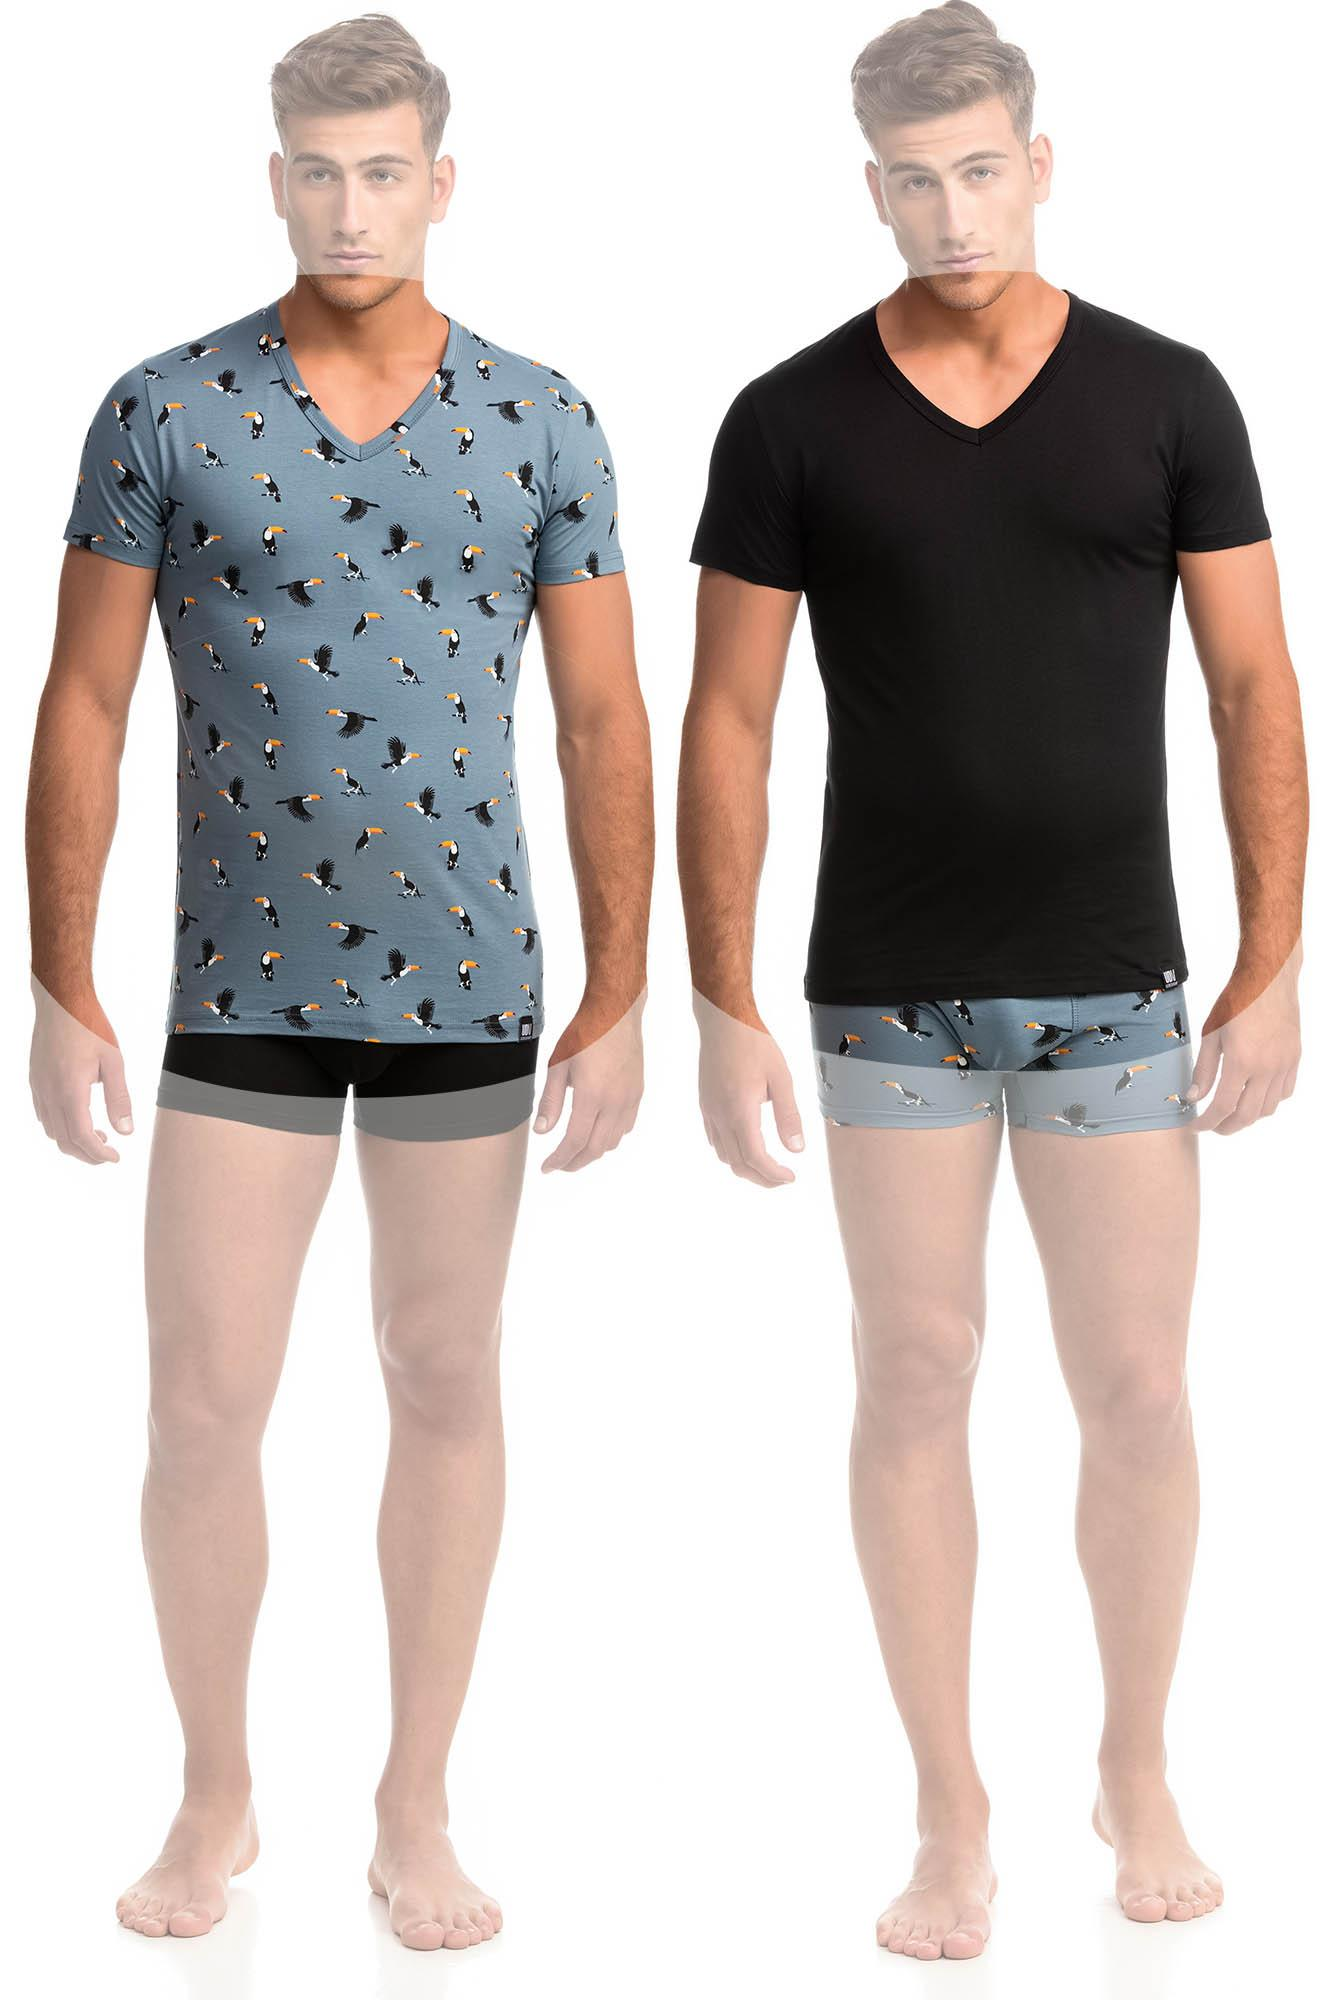 Men's 2-Pack Short-Sleeved Vests